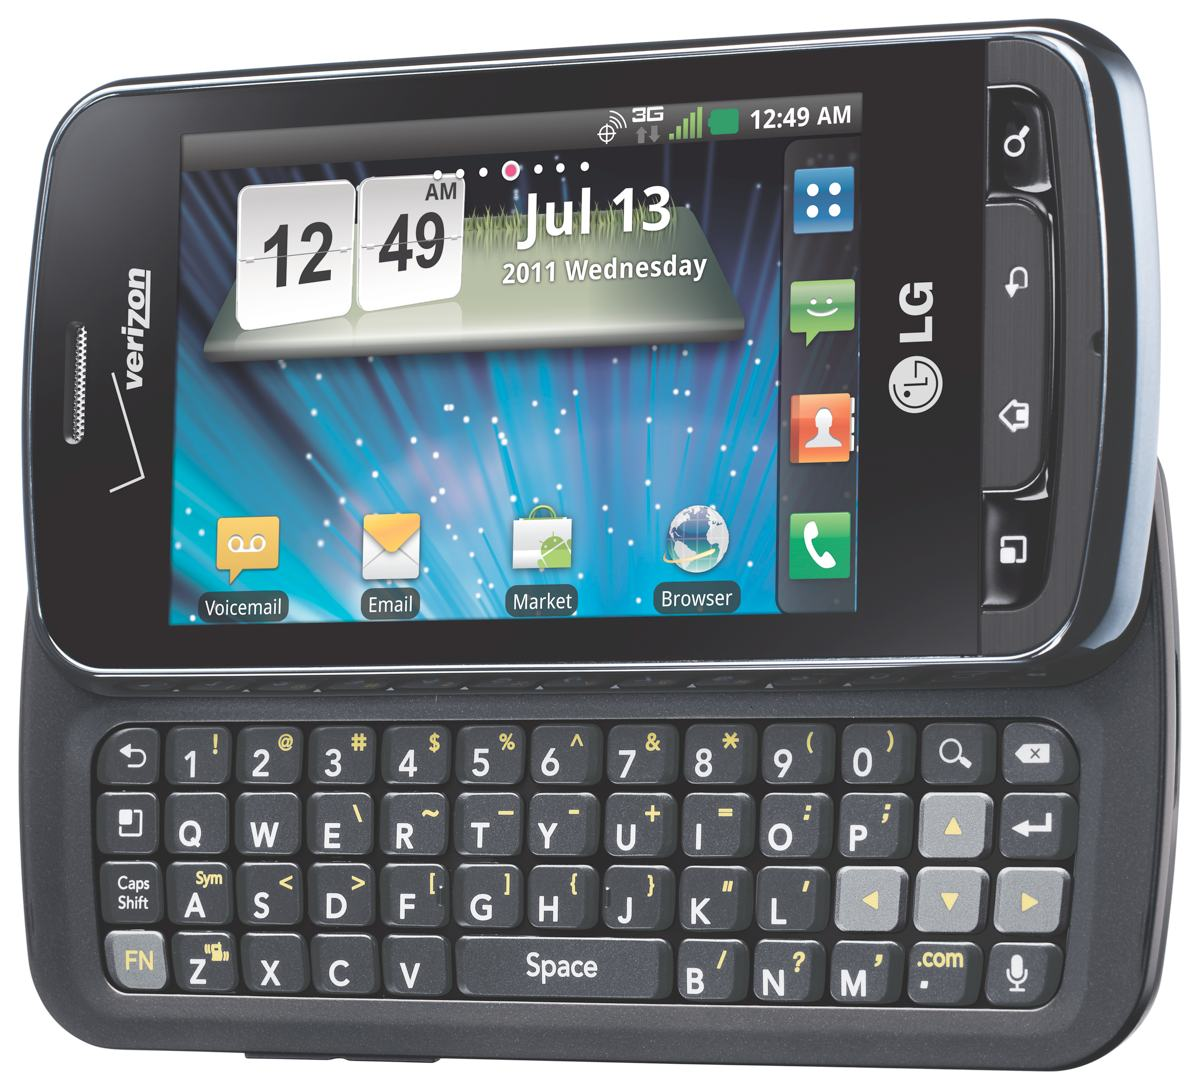 Phone Android Phone With Keyboard amazon com lg enlighten black 2gb verizon wireless cell com